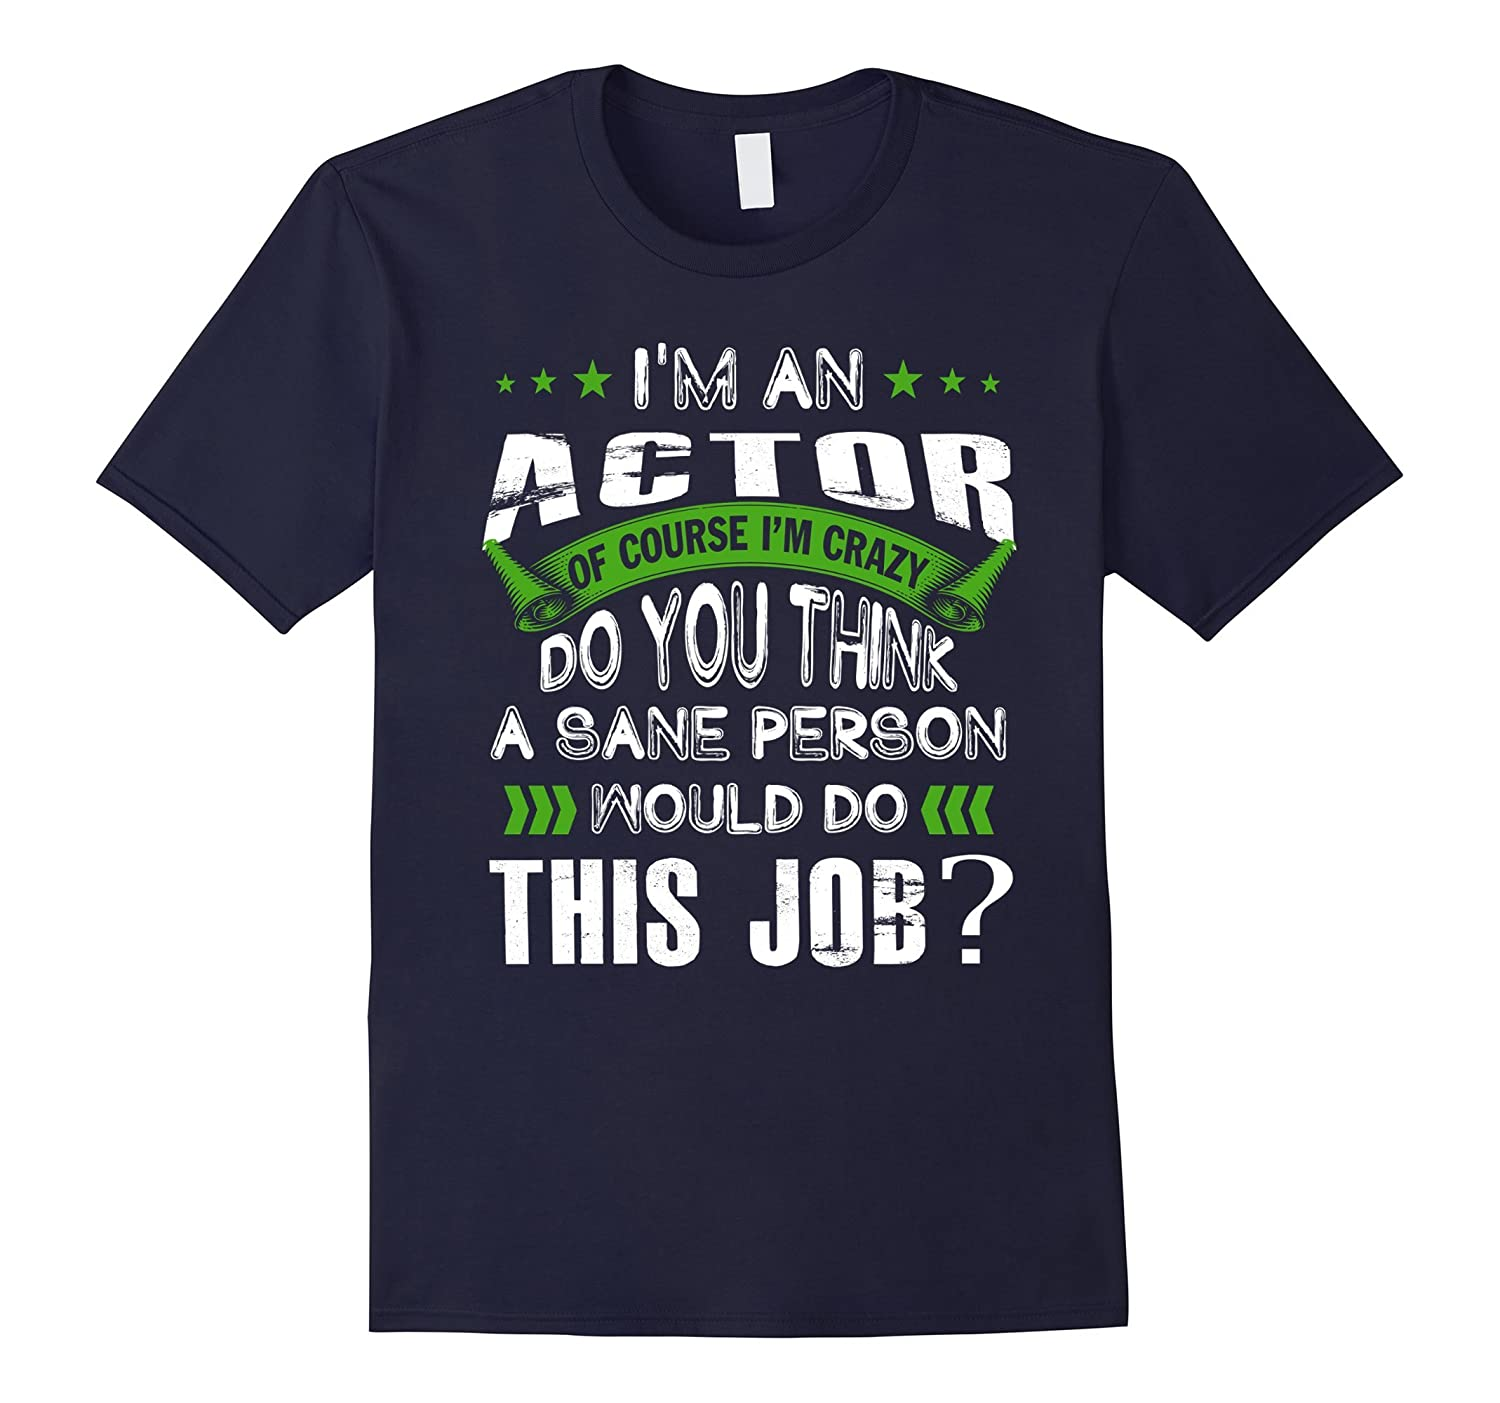 ACTOR is crazy do you think a sane person would this job-TJ